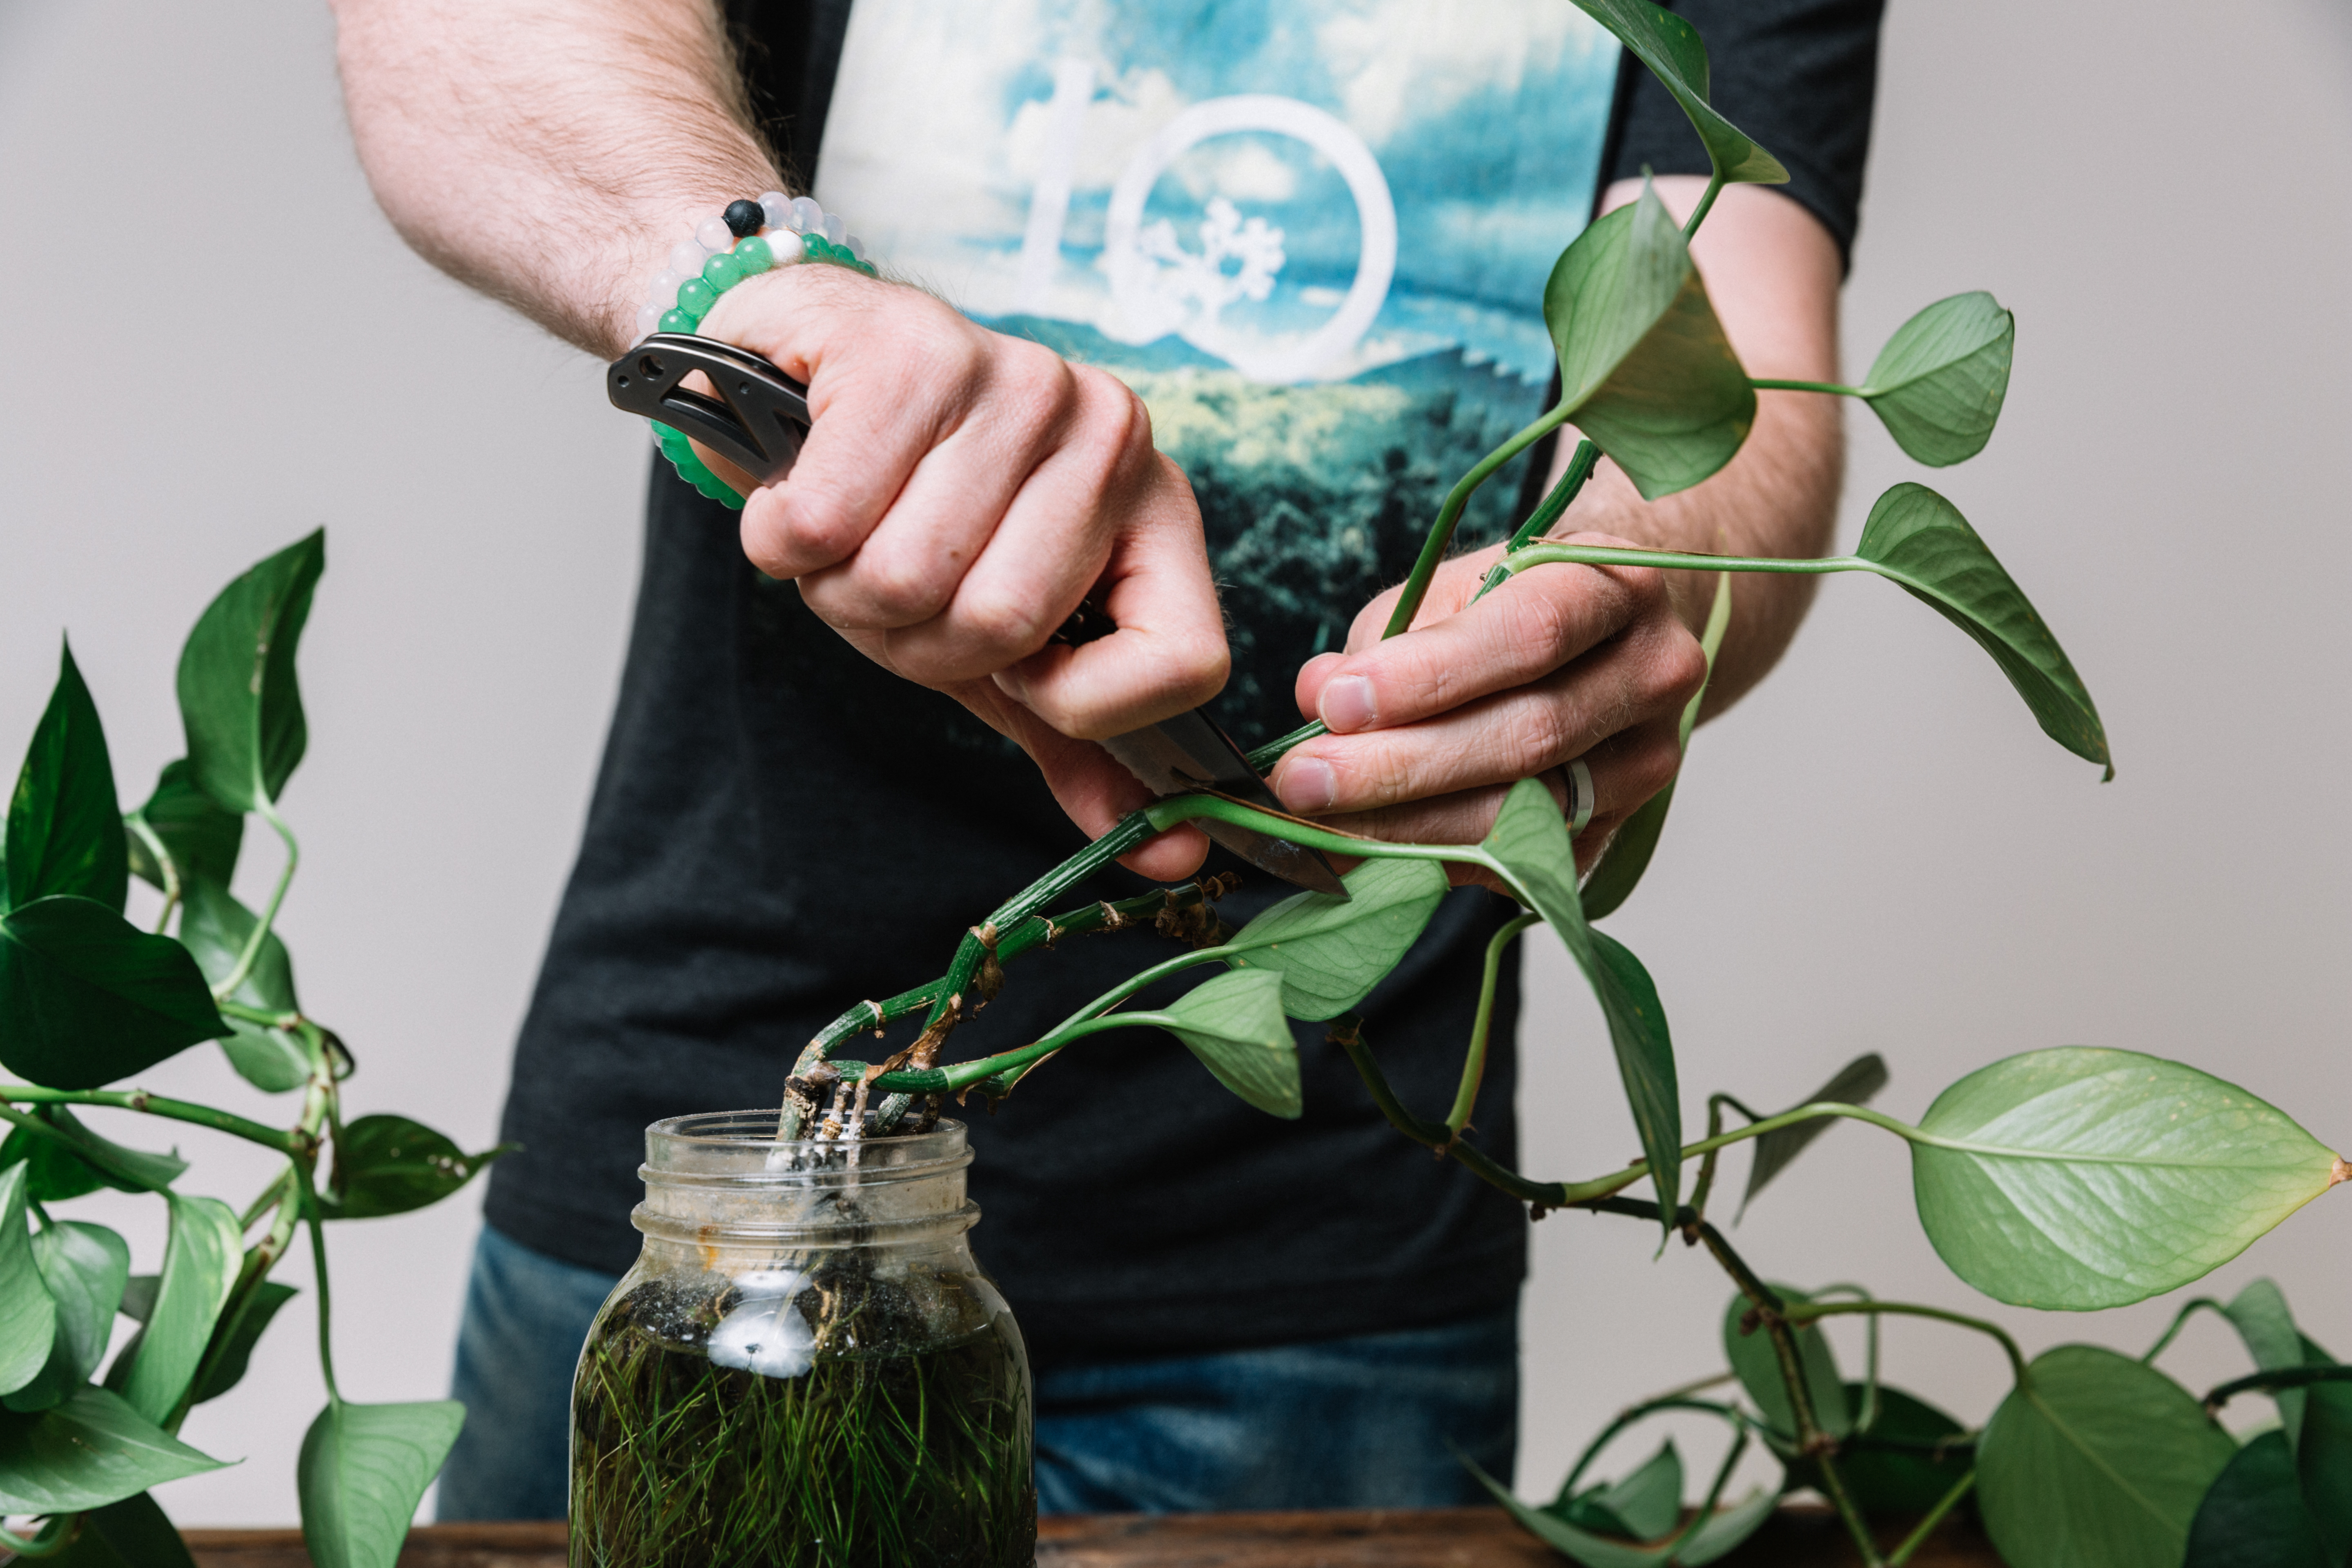 Jake is propagating a plant using his pocket knife and wearing his Lokai balance bracelets.